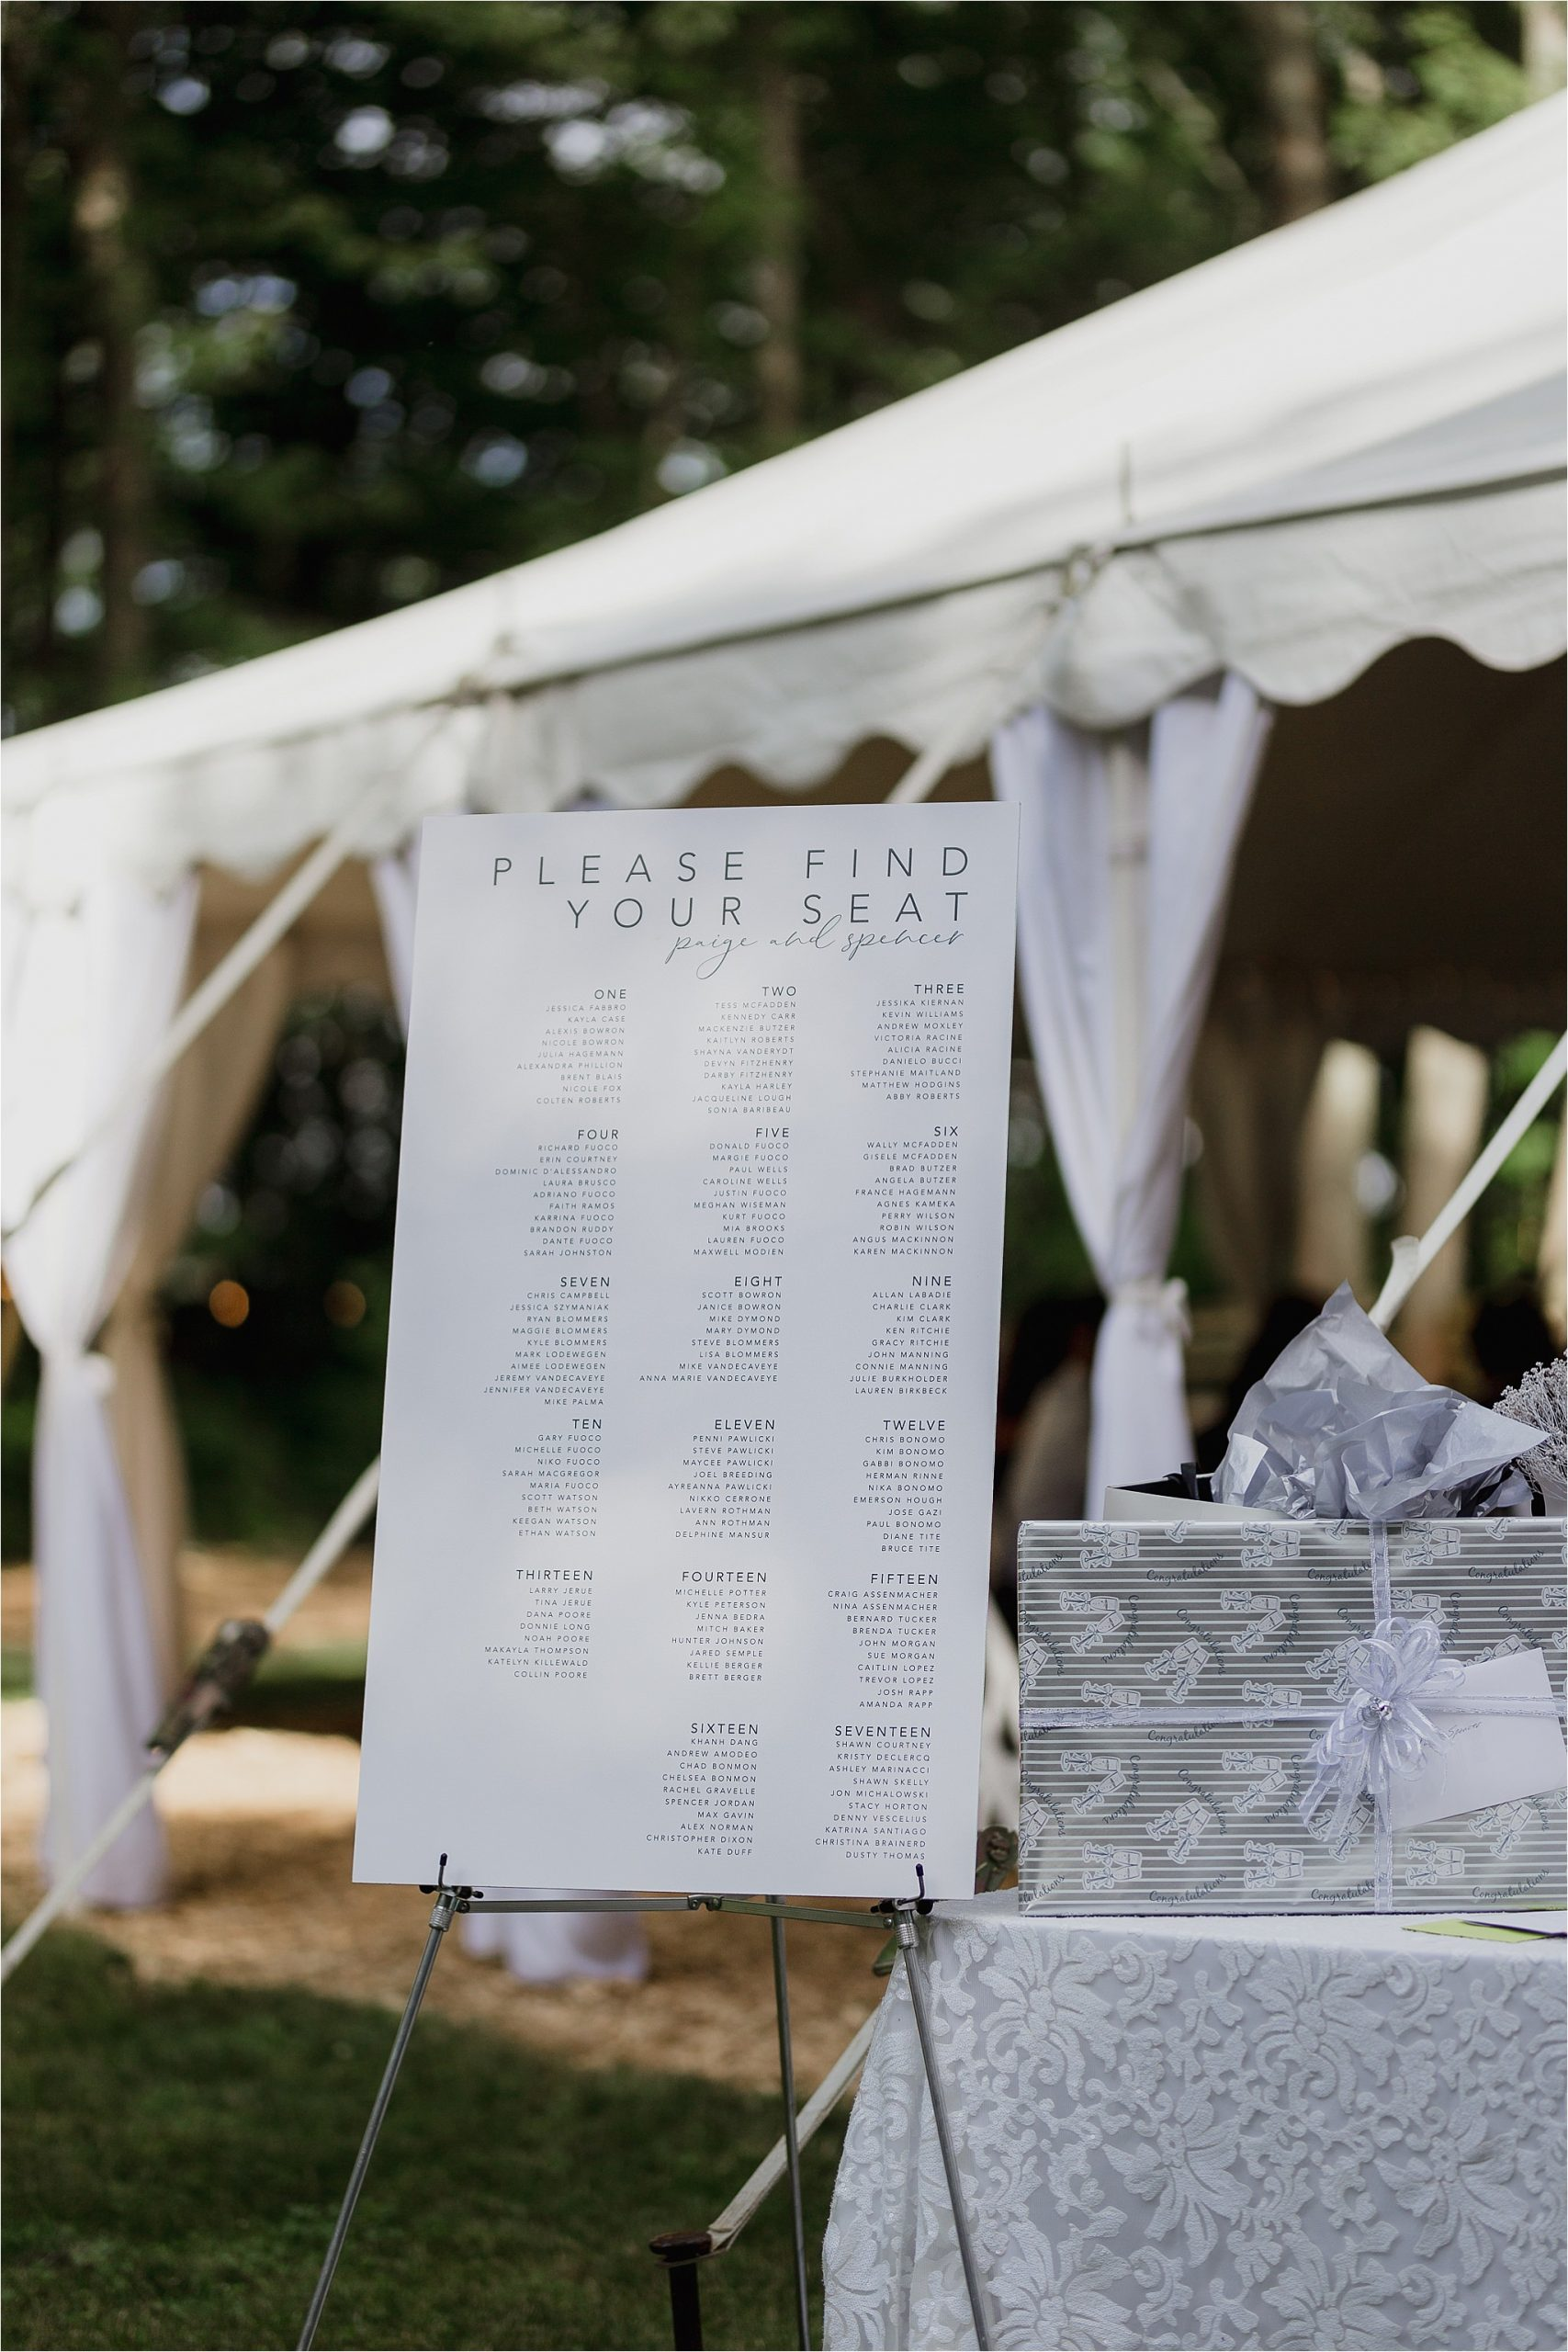 Sonia V Photography, The Clearing reception wedding venue, seating chart, table numbers